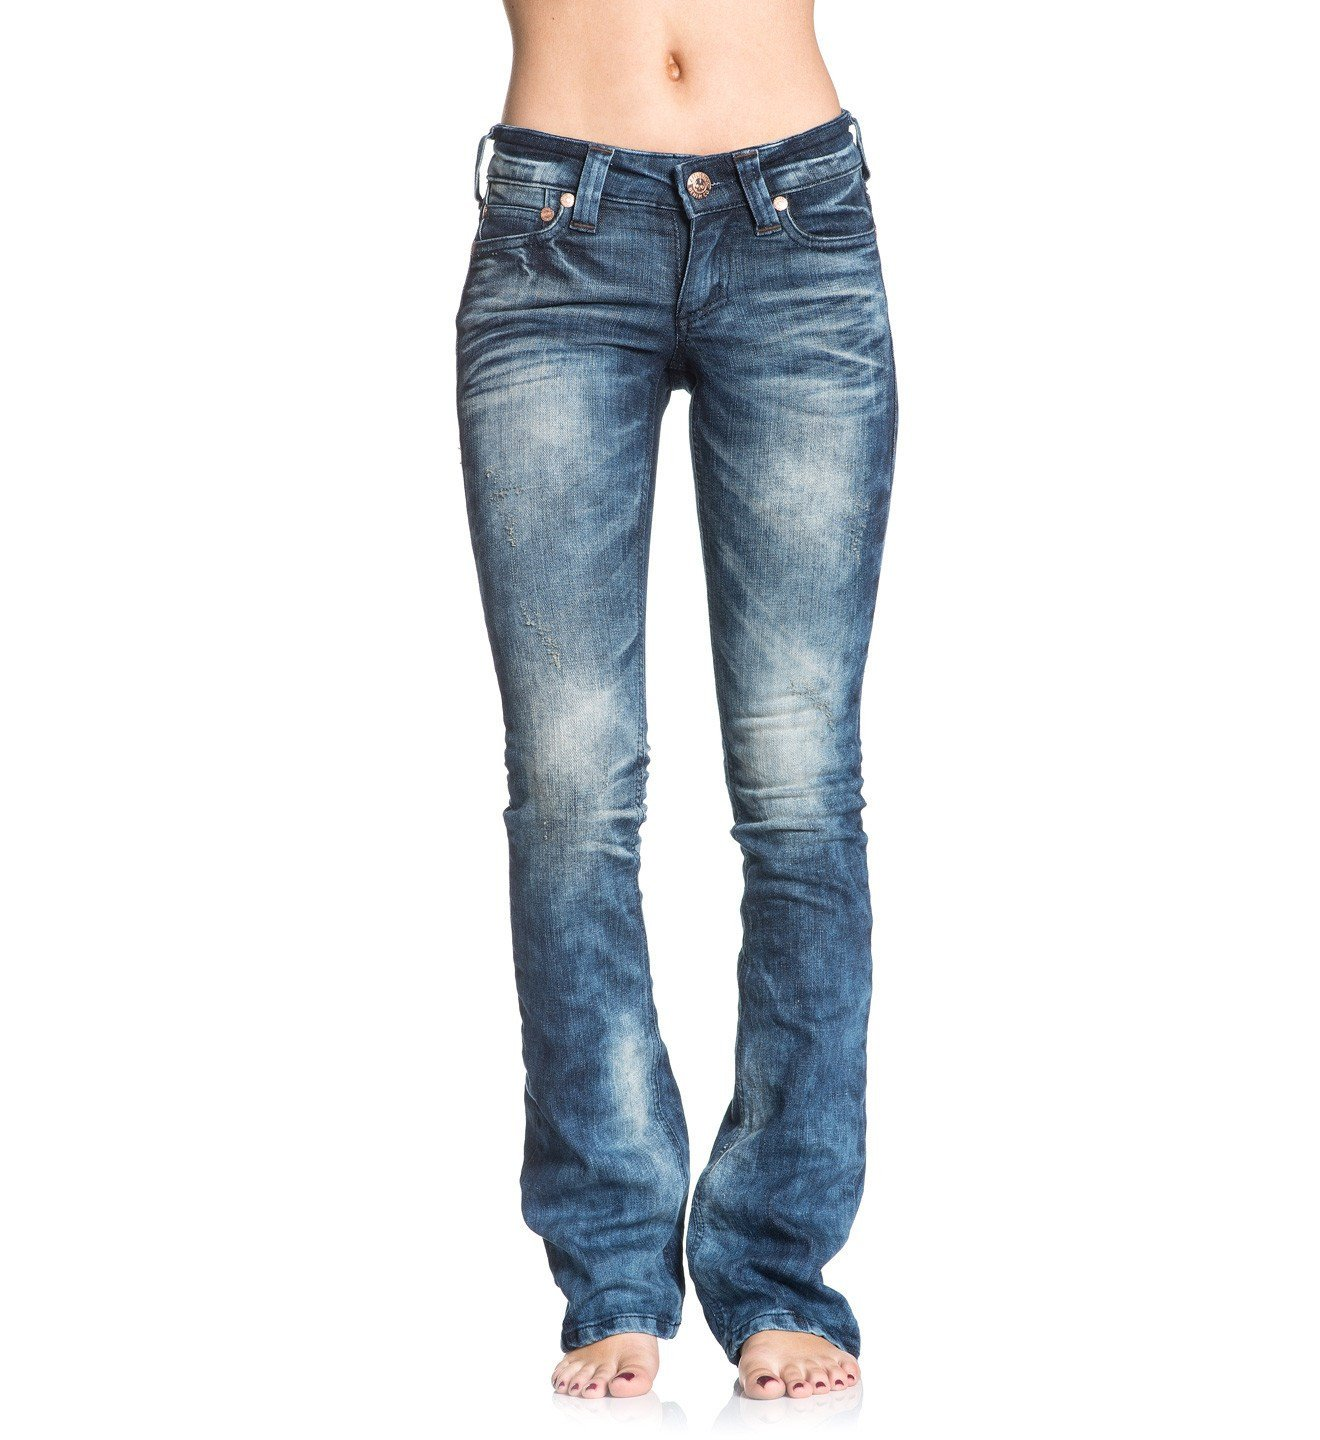 Jade Rising - Womens Denim Bottoms - Affliction Clothing